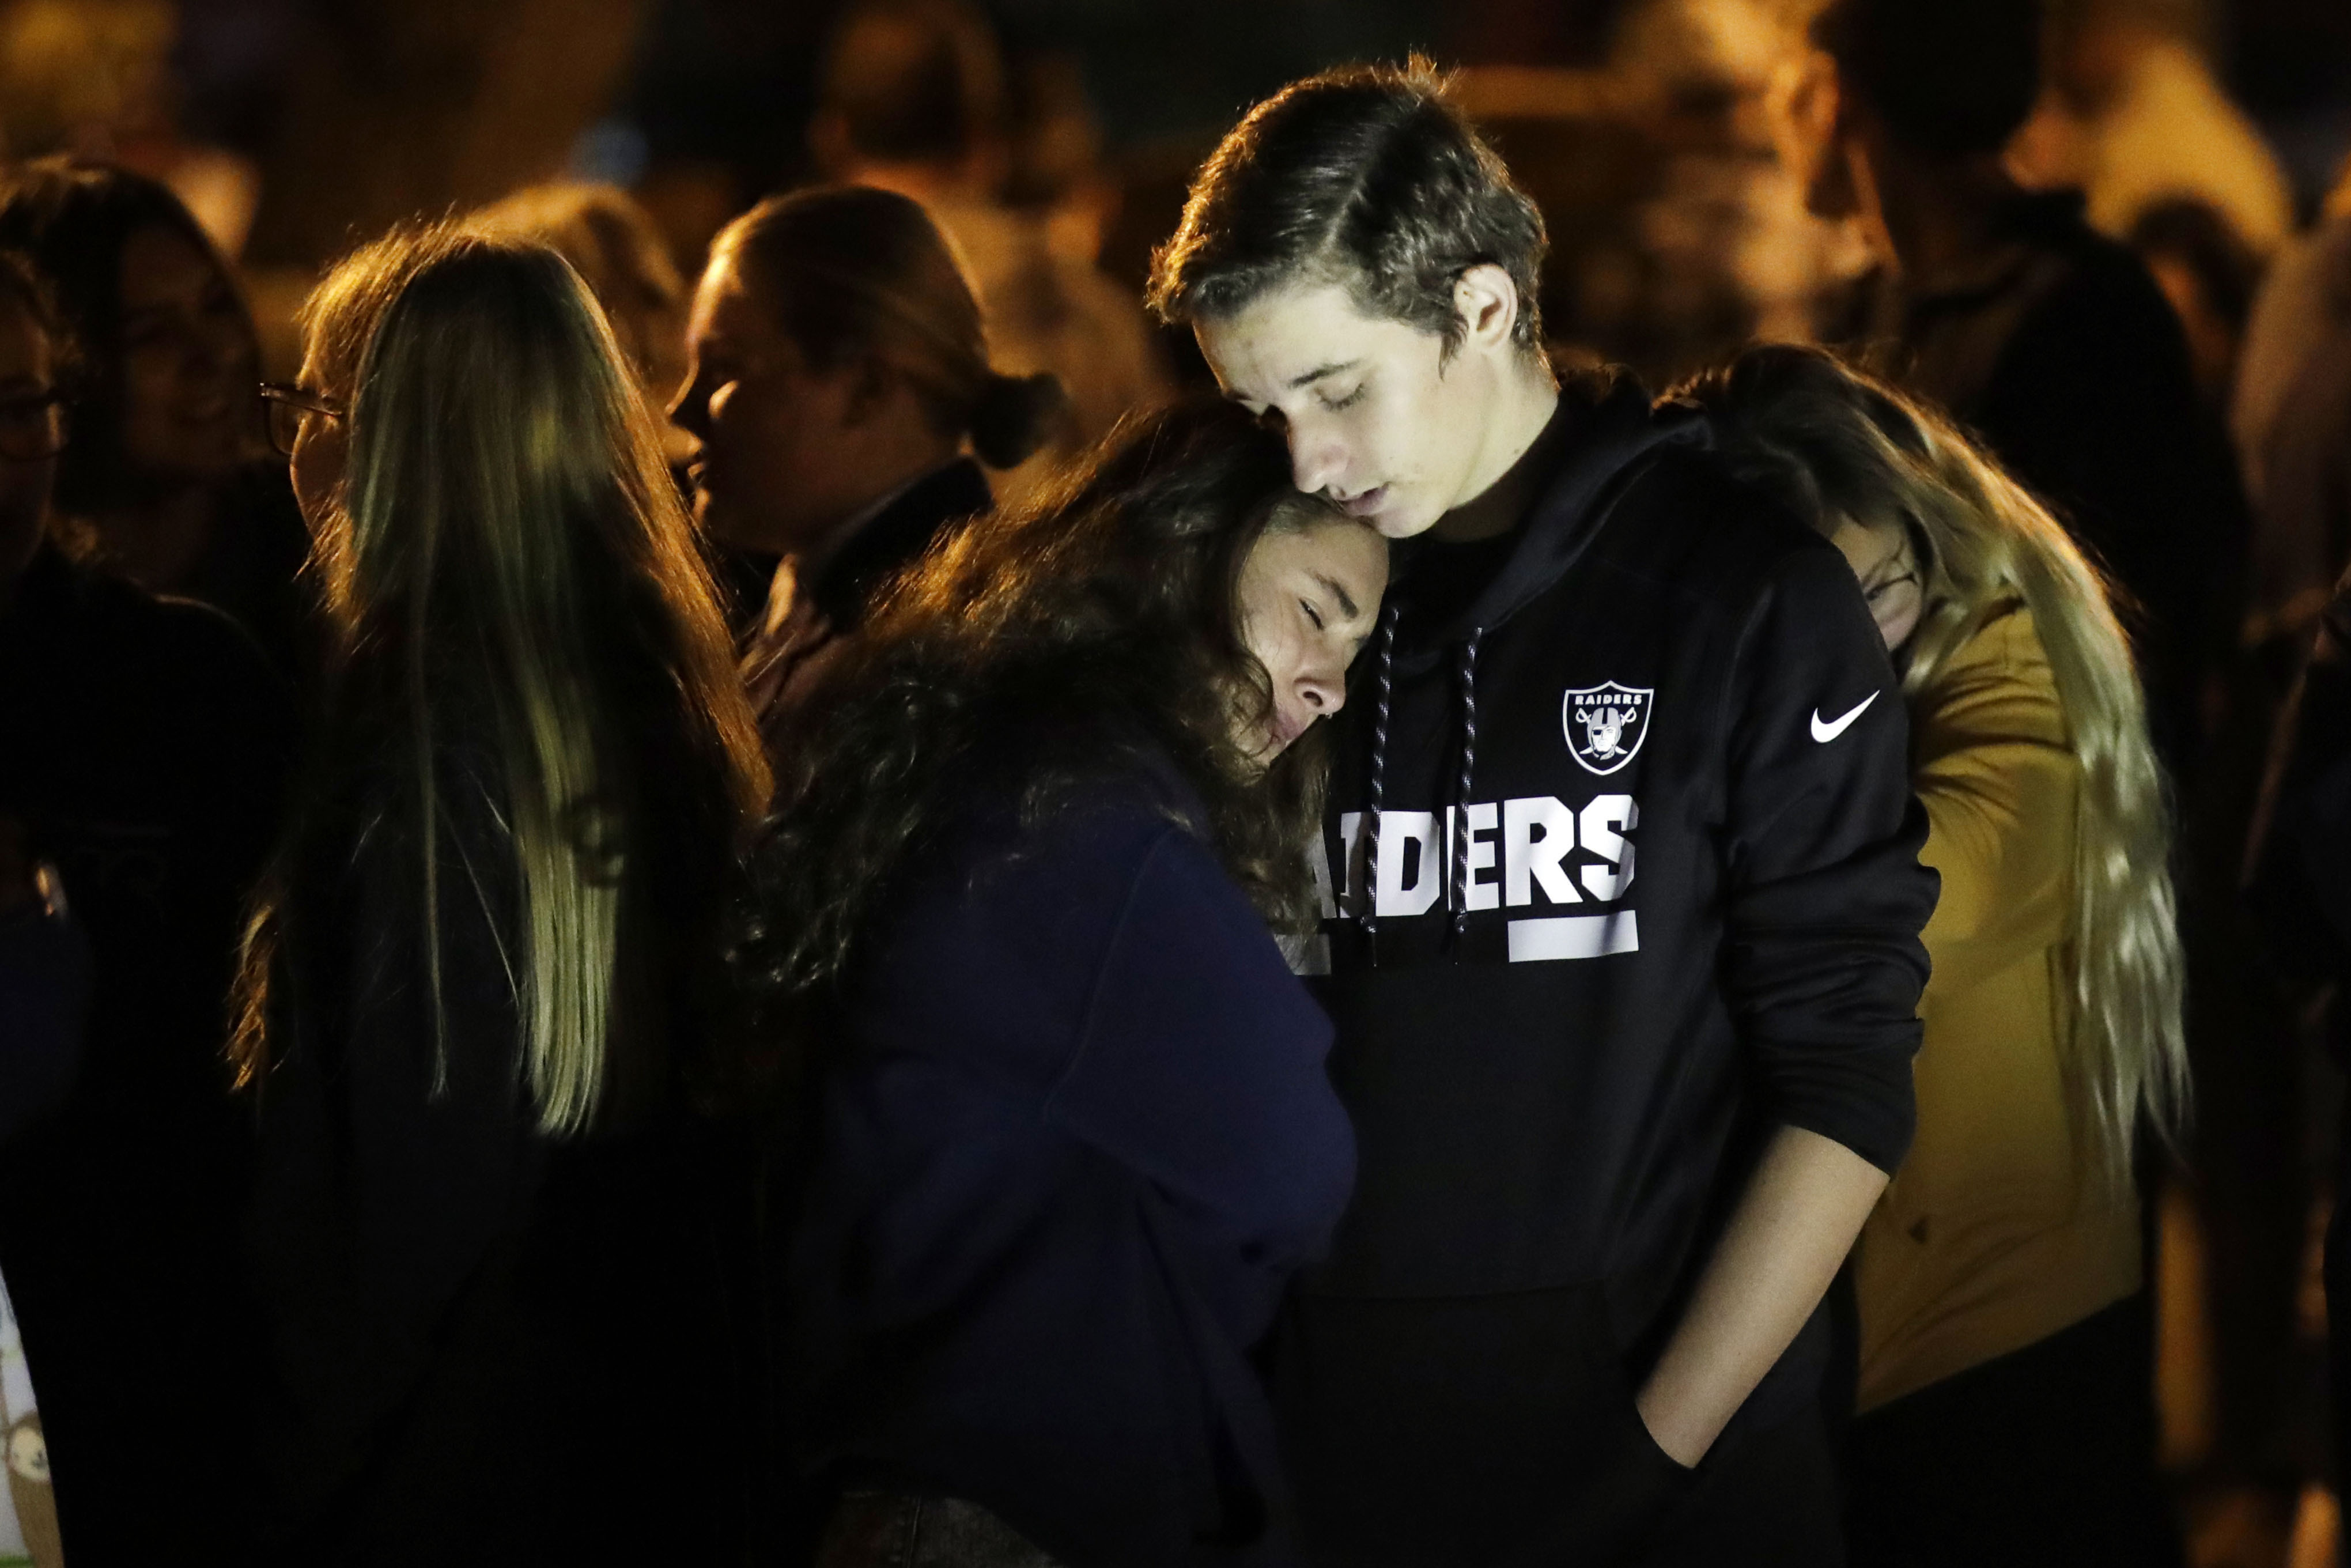 Teen in California School Shooting Killed 2,...